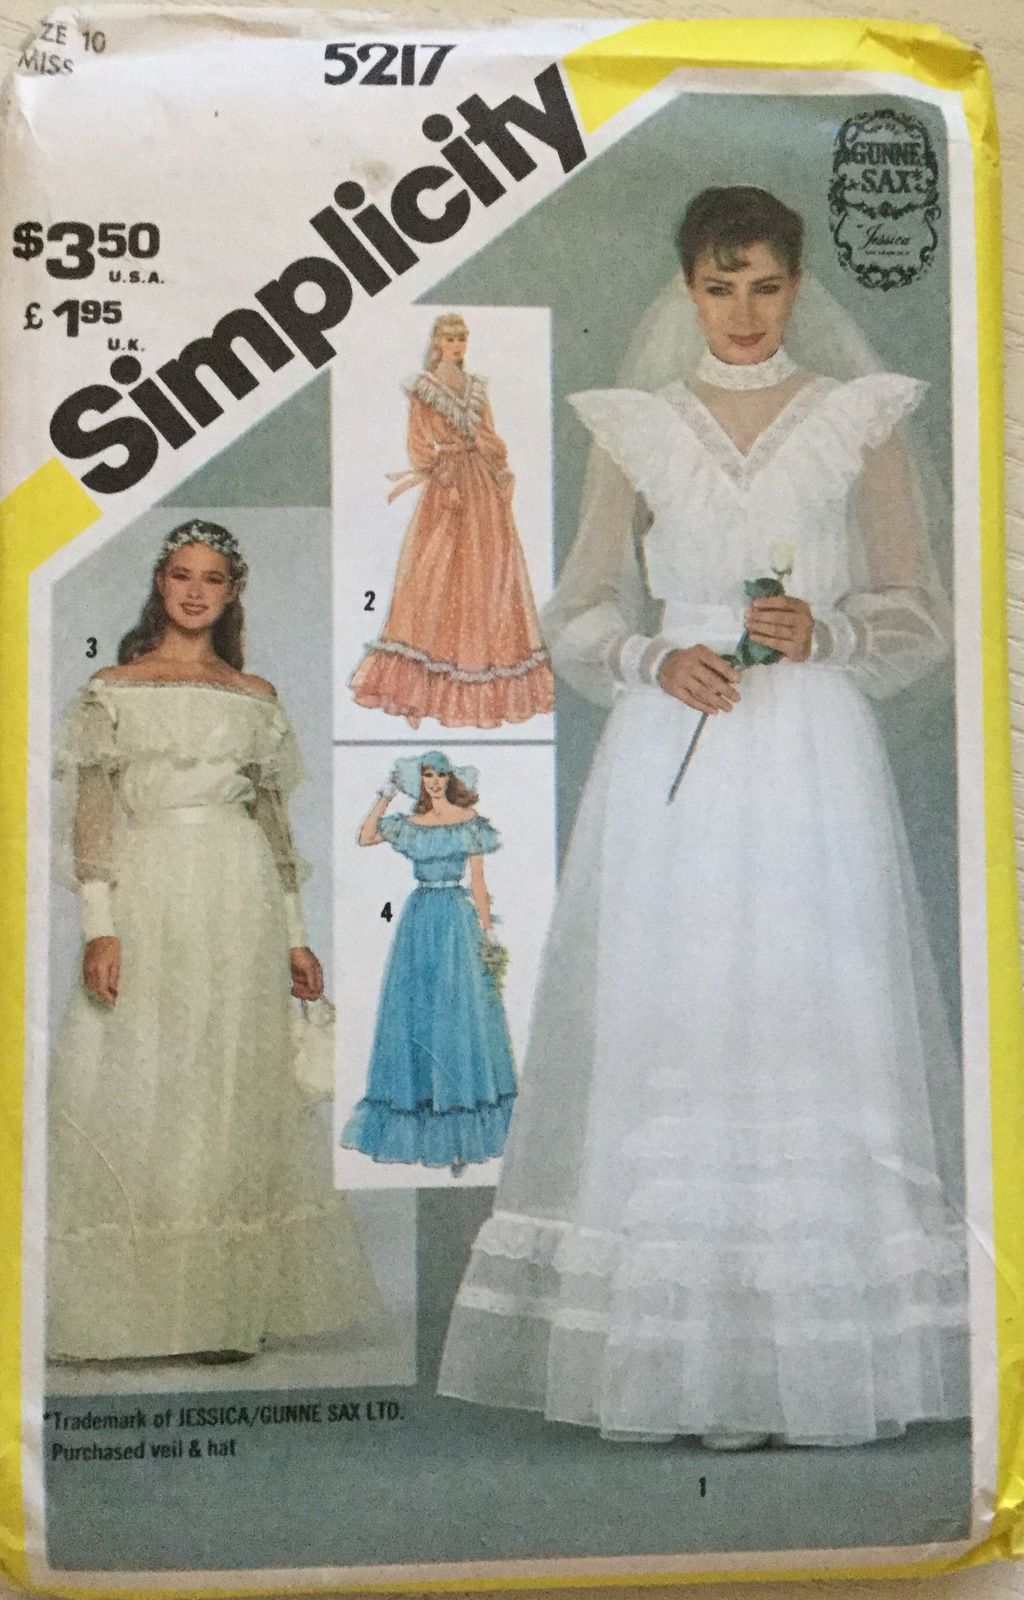 Pin by jeanns two girl pugs bonanza on wedding dresses simplicity 5217 misses bridal bridesmaid dresses by gunne sax size 10 dress patterns ukwedding dress patternssewing ombrellifo Gallery